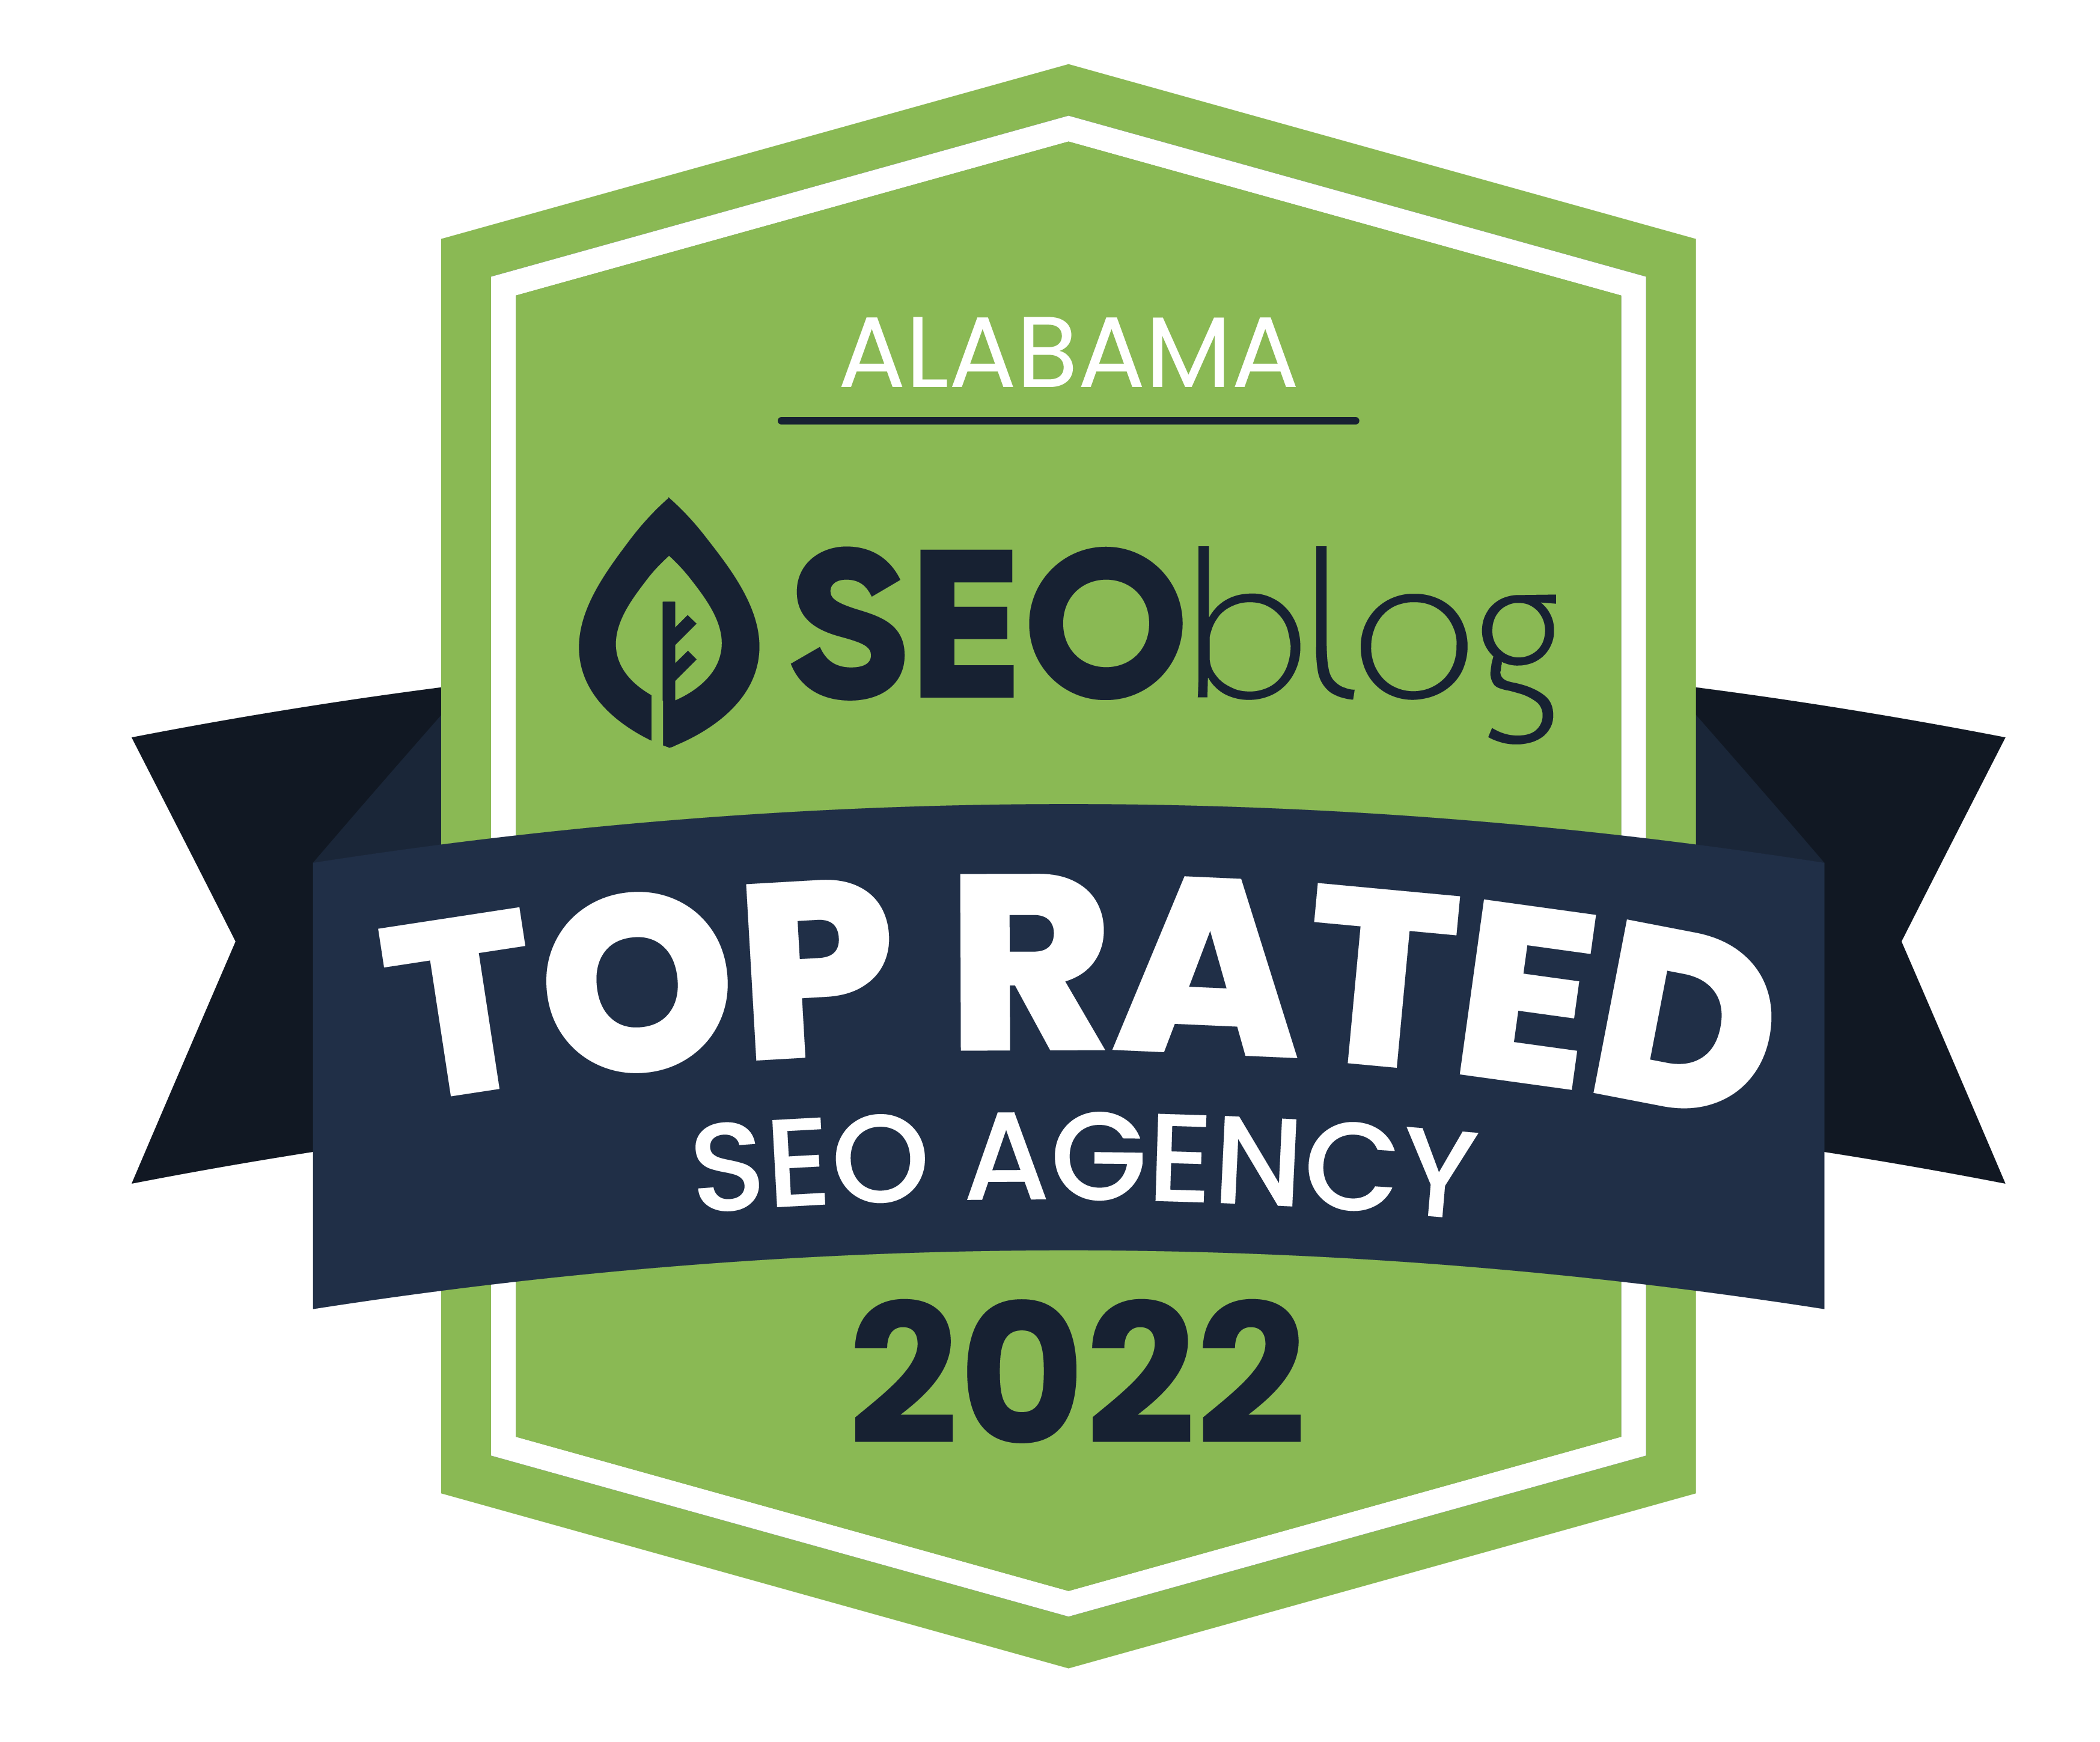 Alabama SEO Agency